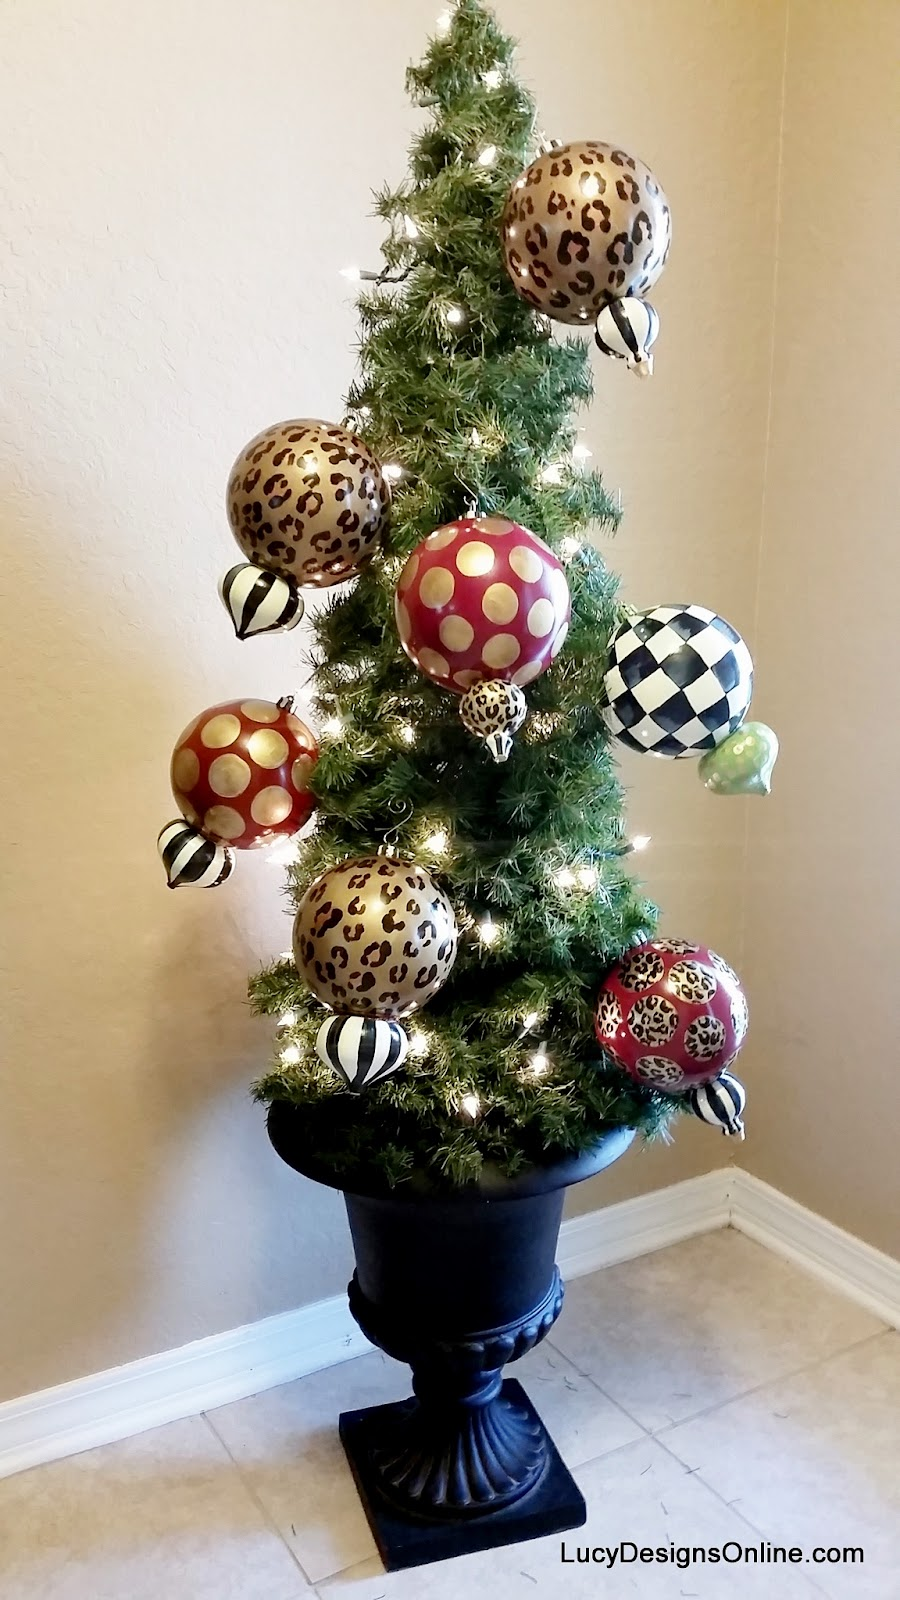 Large white christmas ornaments - Hand Painted Christmas Ornaments Black And White Checks Stripes Animal Print Large Whimisical Ornaments